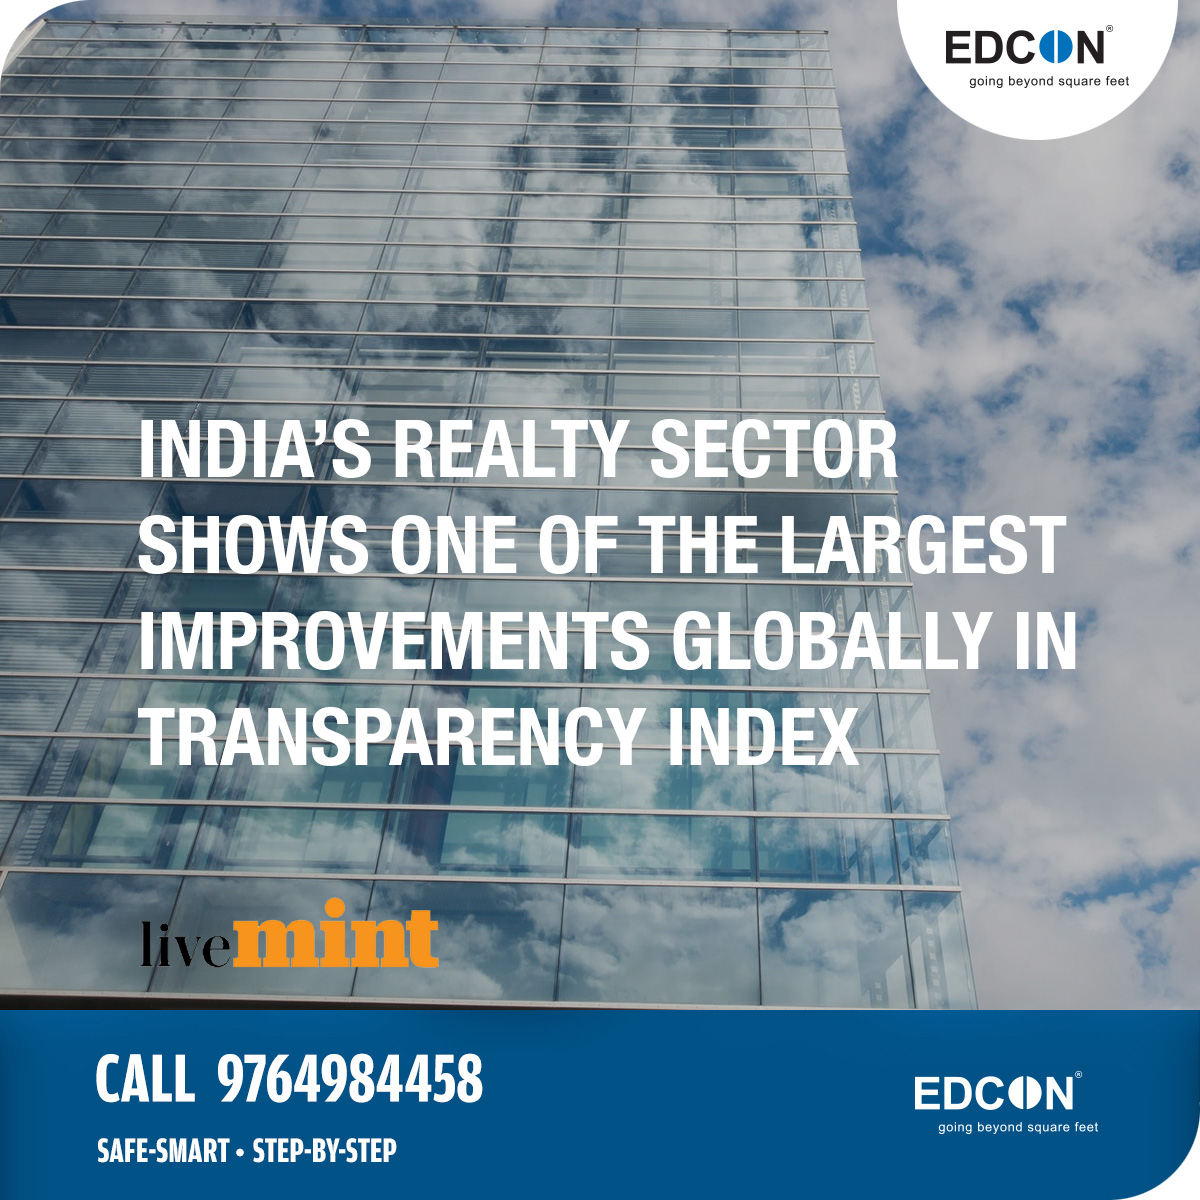 India's realty sector transparency improves